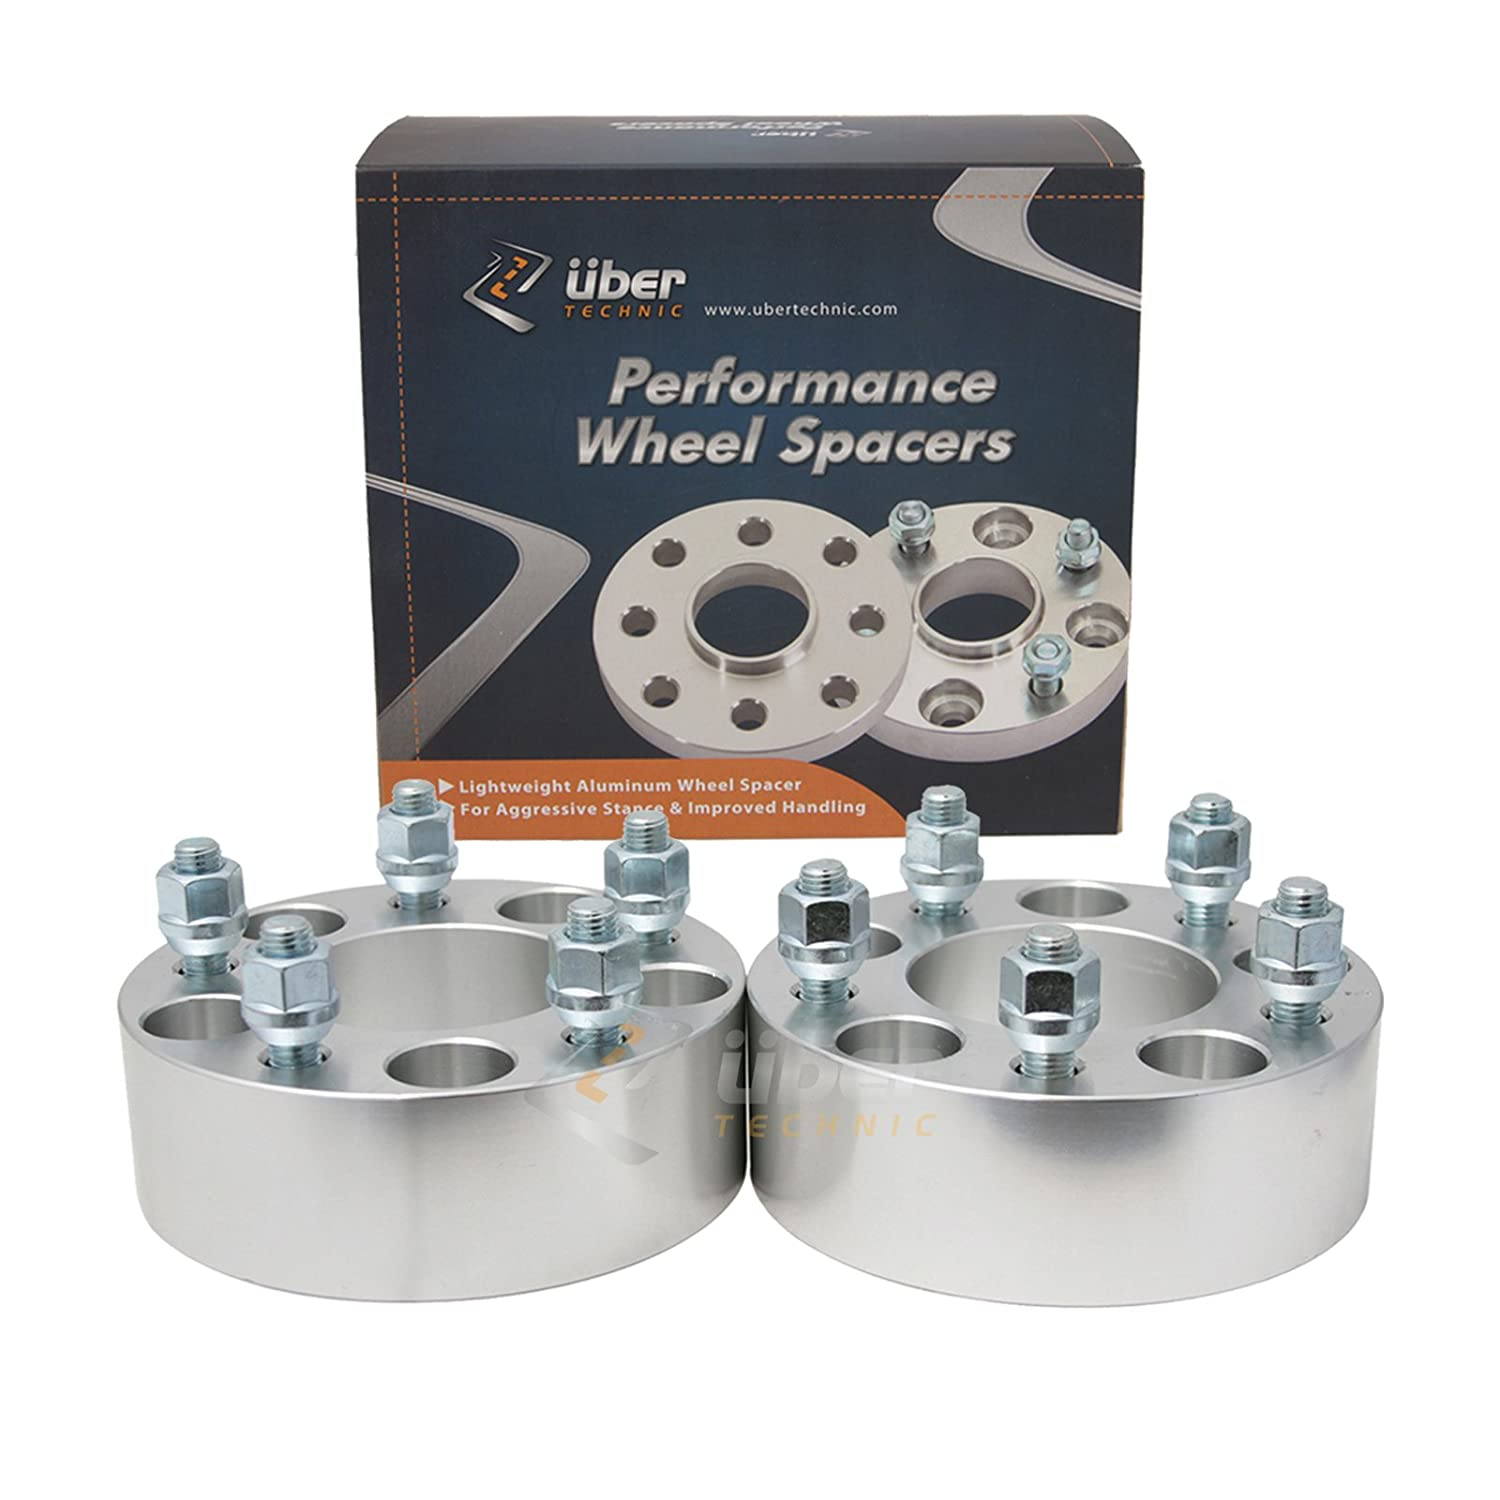 (2) 38mm (1.5') 5x4.5 to 5x4.5 Hubcentric Wheel Spacers for Ford Lincoln Mustang Edge Crown Victoria Bronco Ranger Explorer Town Car Mountaineer Aviator Edge Mark 7 (1/2' Studs & 70.5mm bore) Precision European Motorwerks